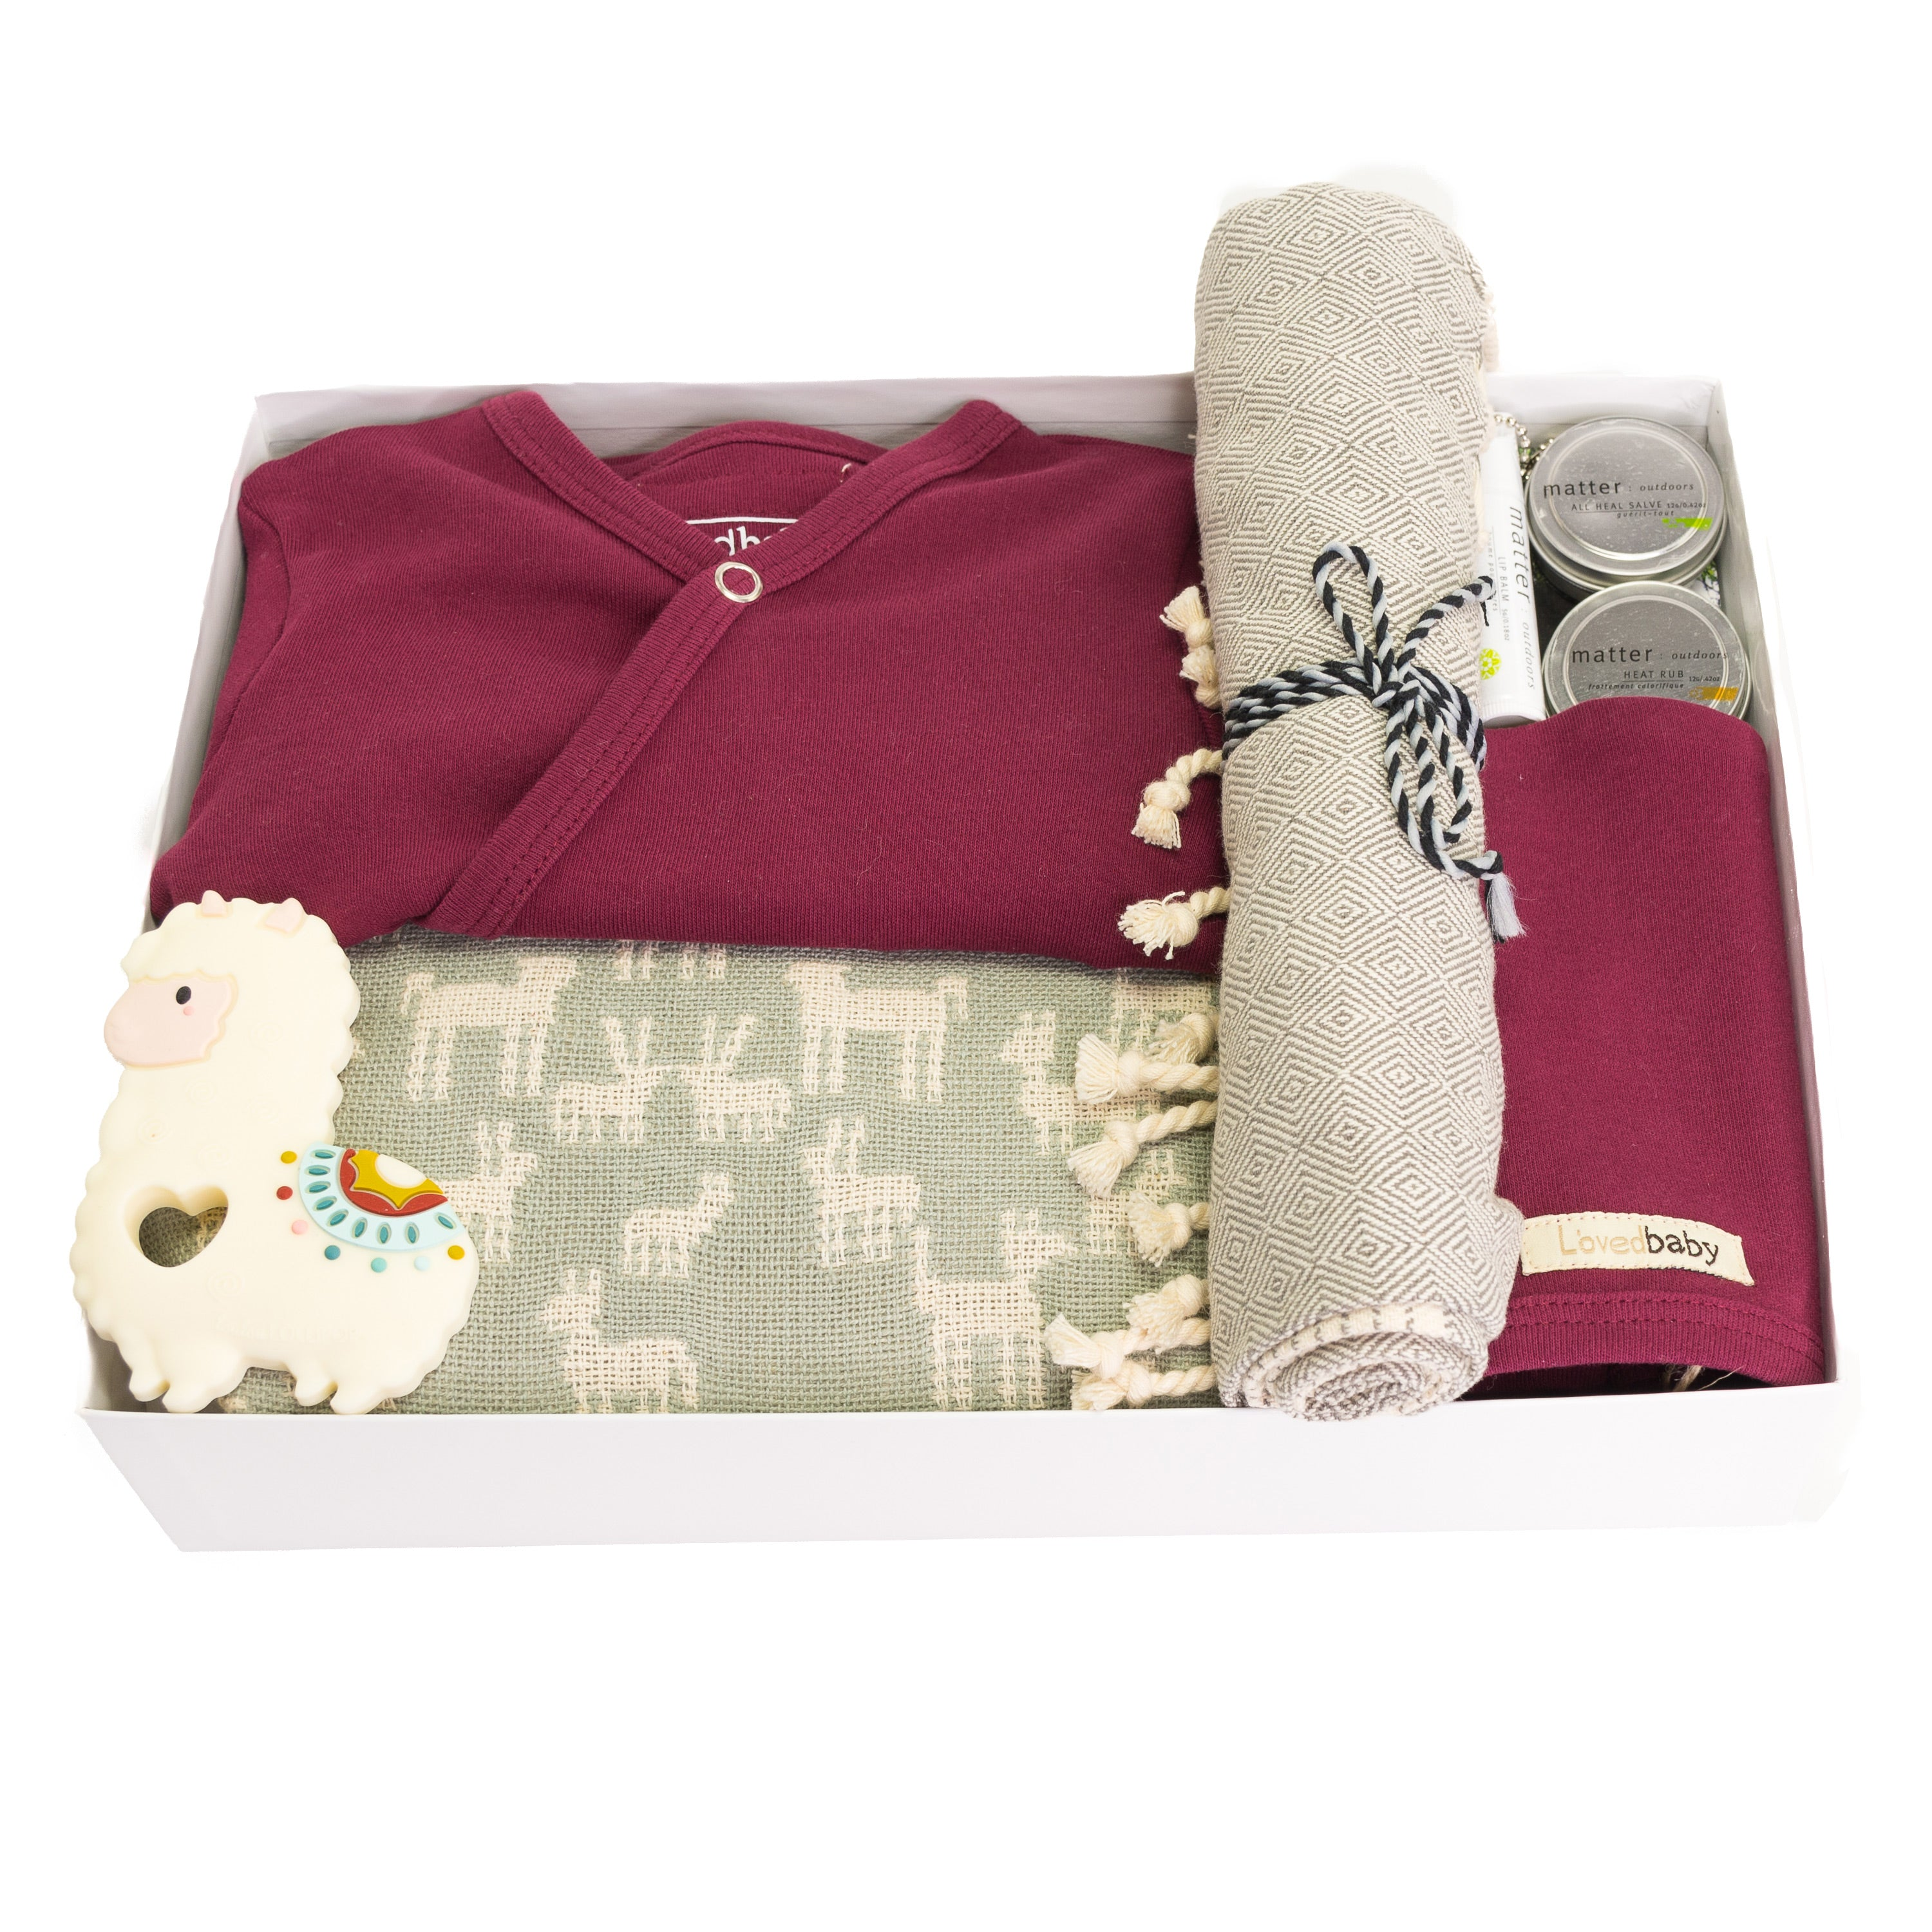 Luxury Baby Gift Box in Neutral